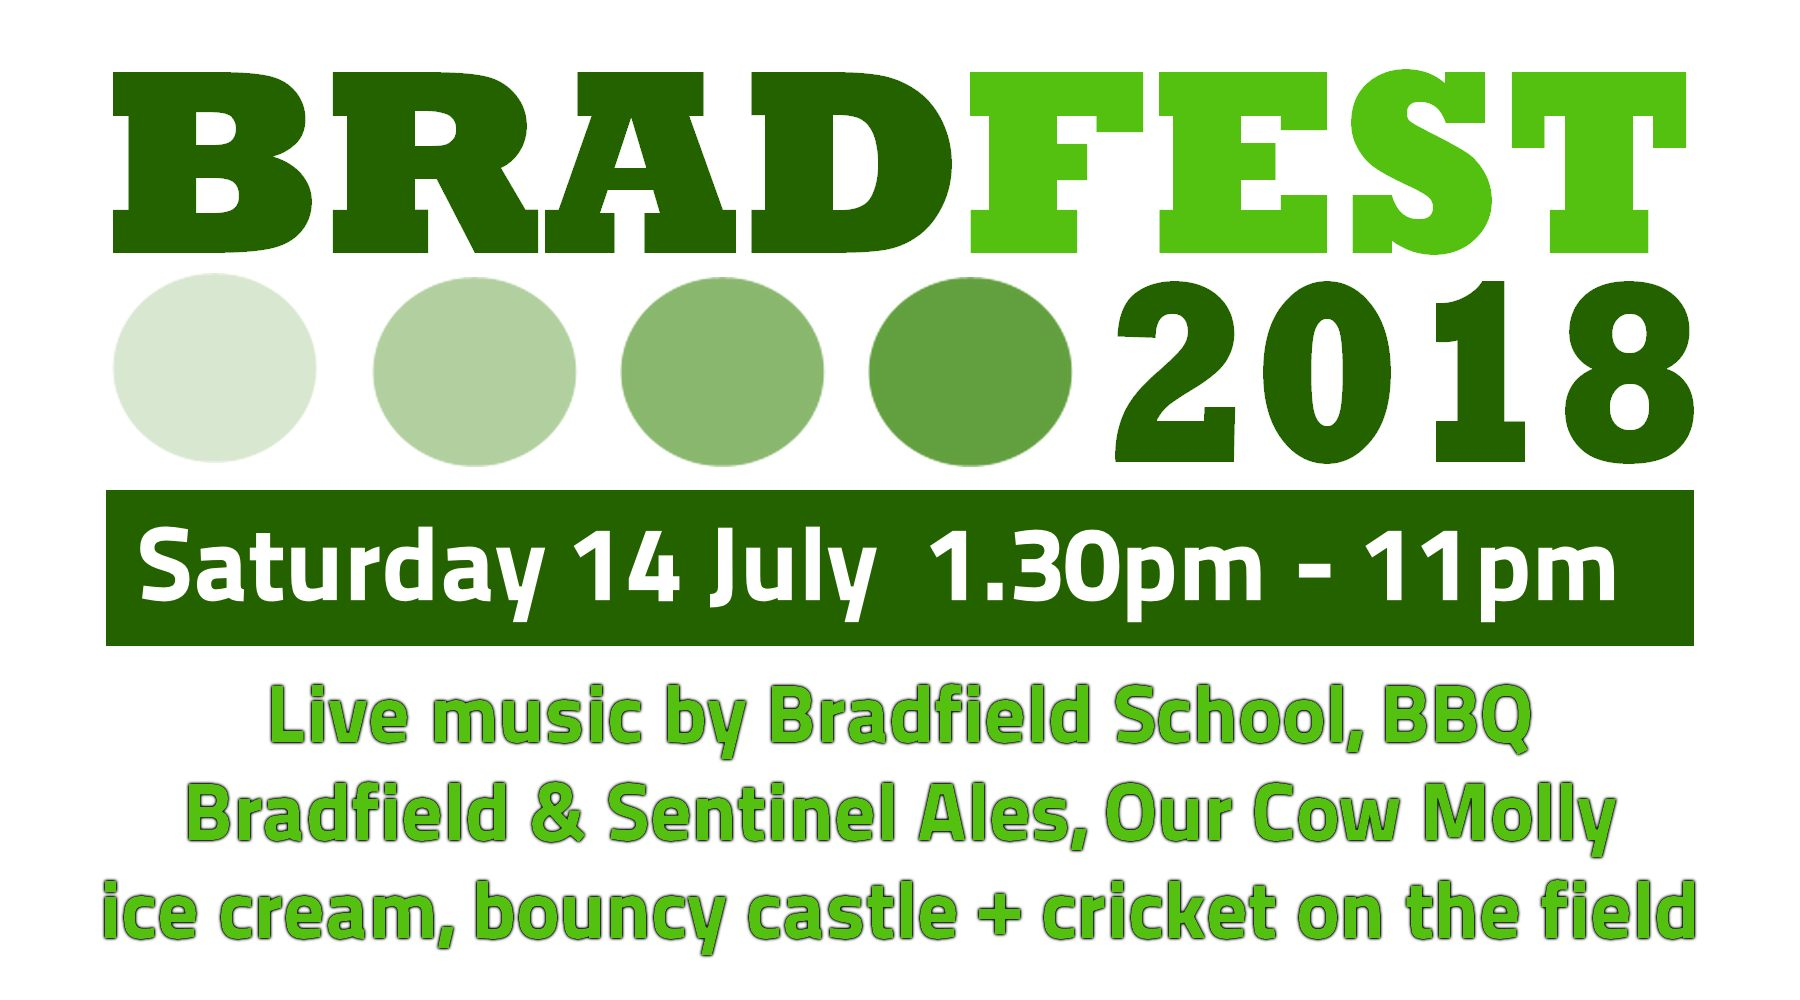 BRADFEST 2018 - Saturday 14th July 2018 - Festival of local music, food and ale in Low Bradfield, Sheffield.